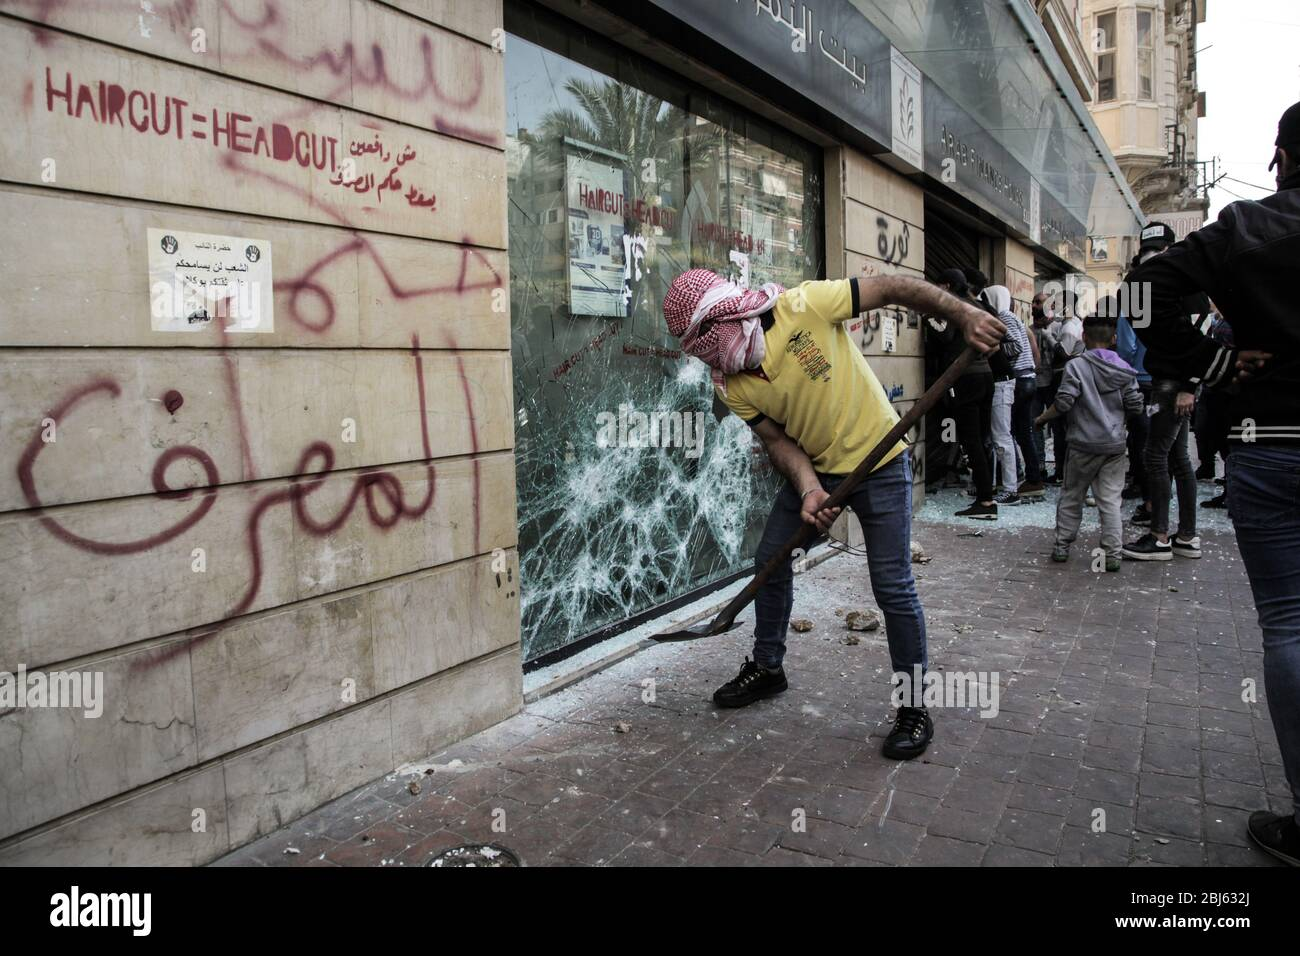 Tripoli, Lebanon, 28 April 2020. Protesters attack a branch of the Arabic Bank during riots that broke out following the death of a protestor shot by the army during protests triggered by economic collapse the previous night. Elizabeth Fitt Credit: Elizabeth Fitt/Alamy Live News Stock Photo